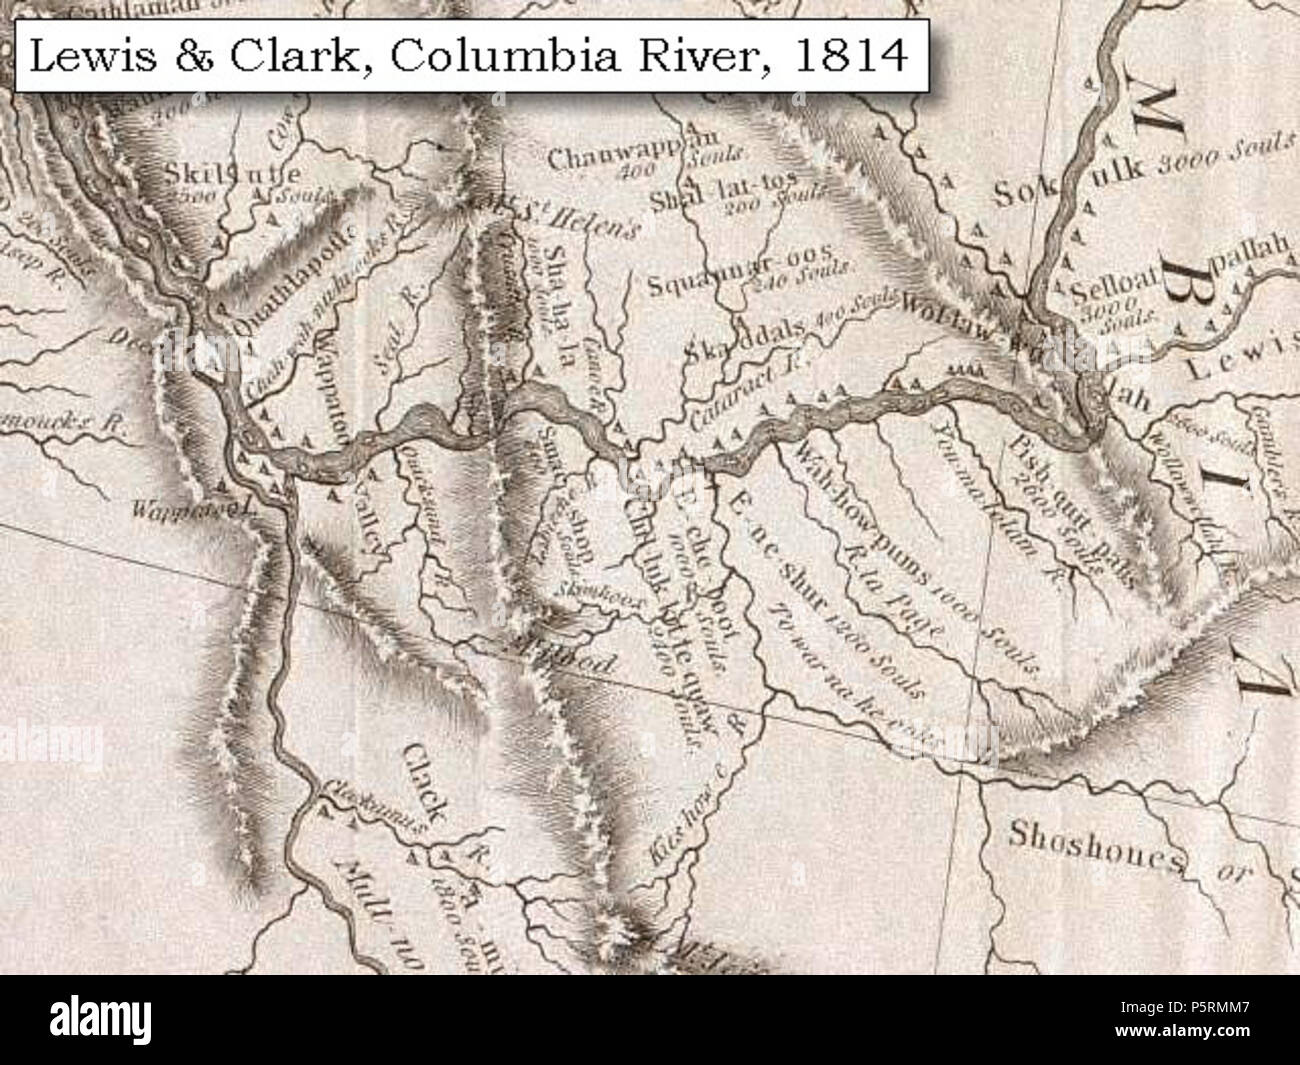 Map Of America Lewis And Clark.N A 1814 Map Lewis And Clark S Map Of The Columbia River Section